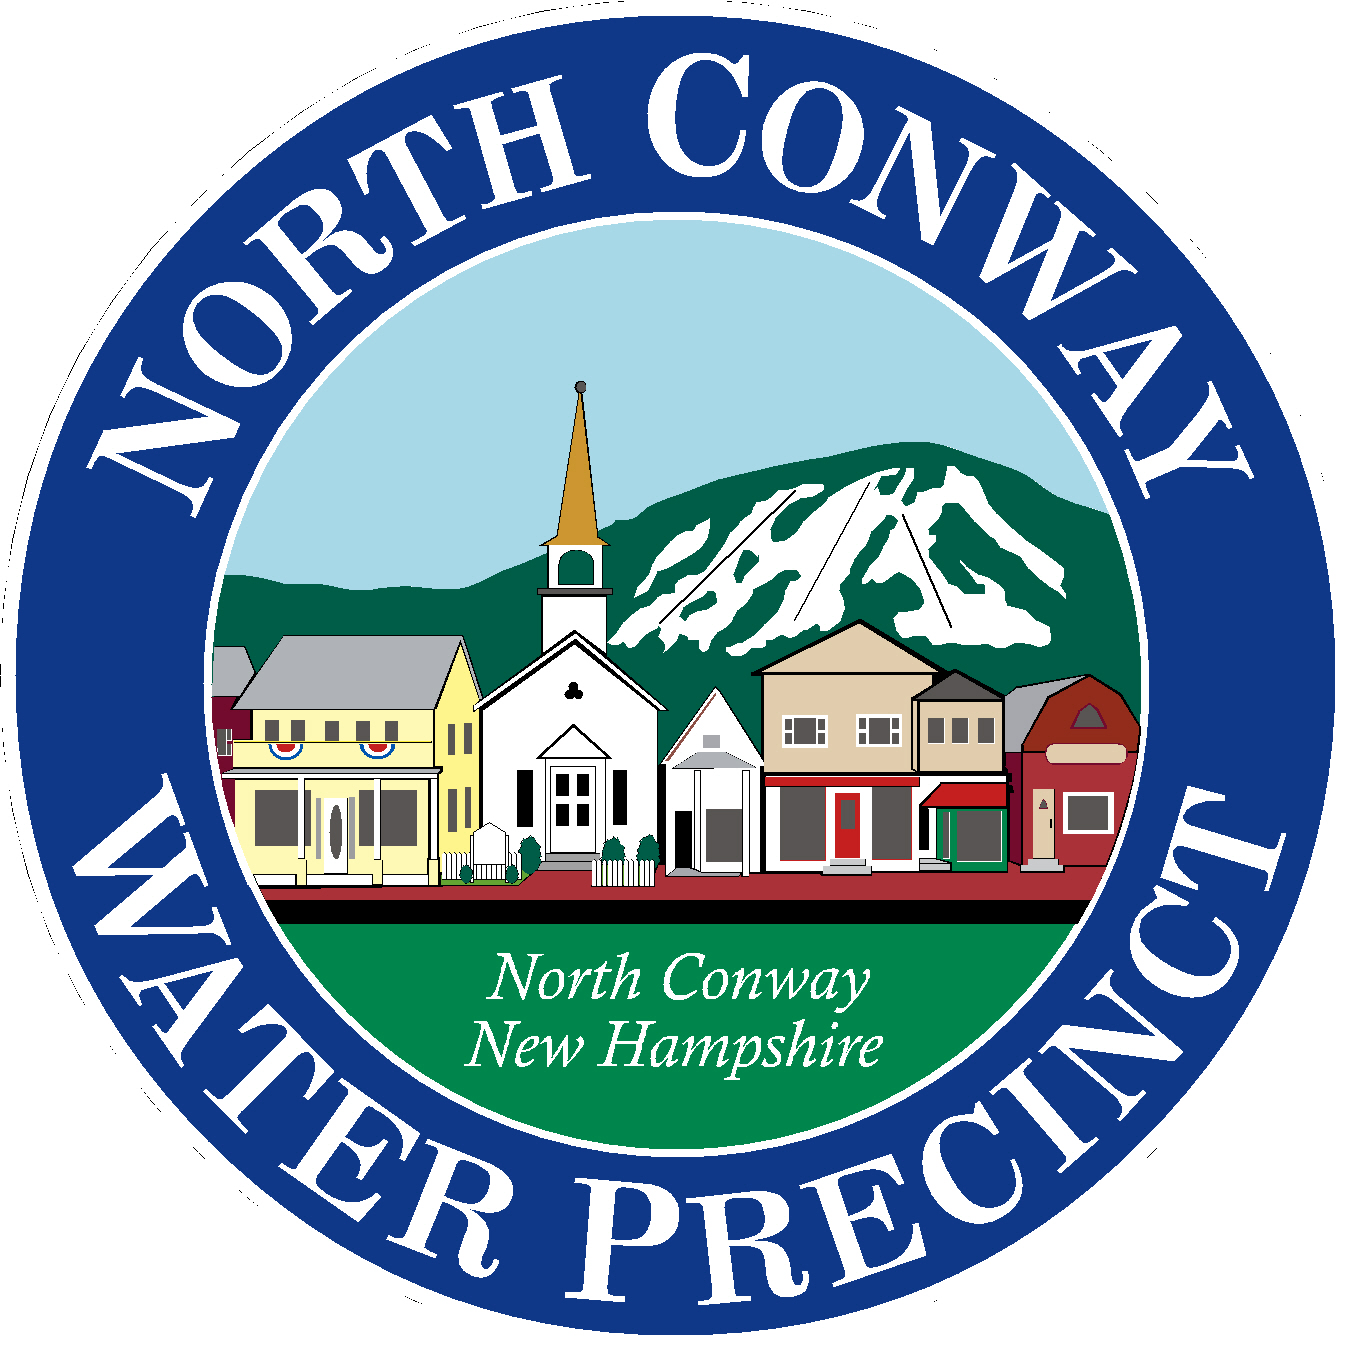 north+conway+water+2010+jpg.JPG